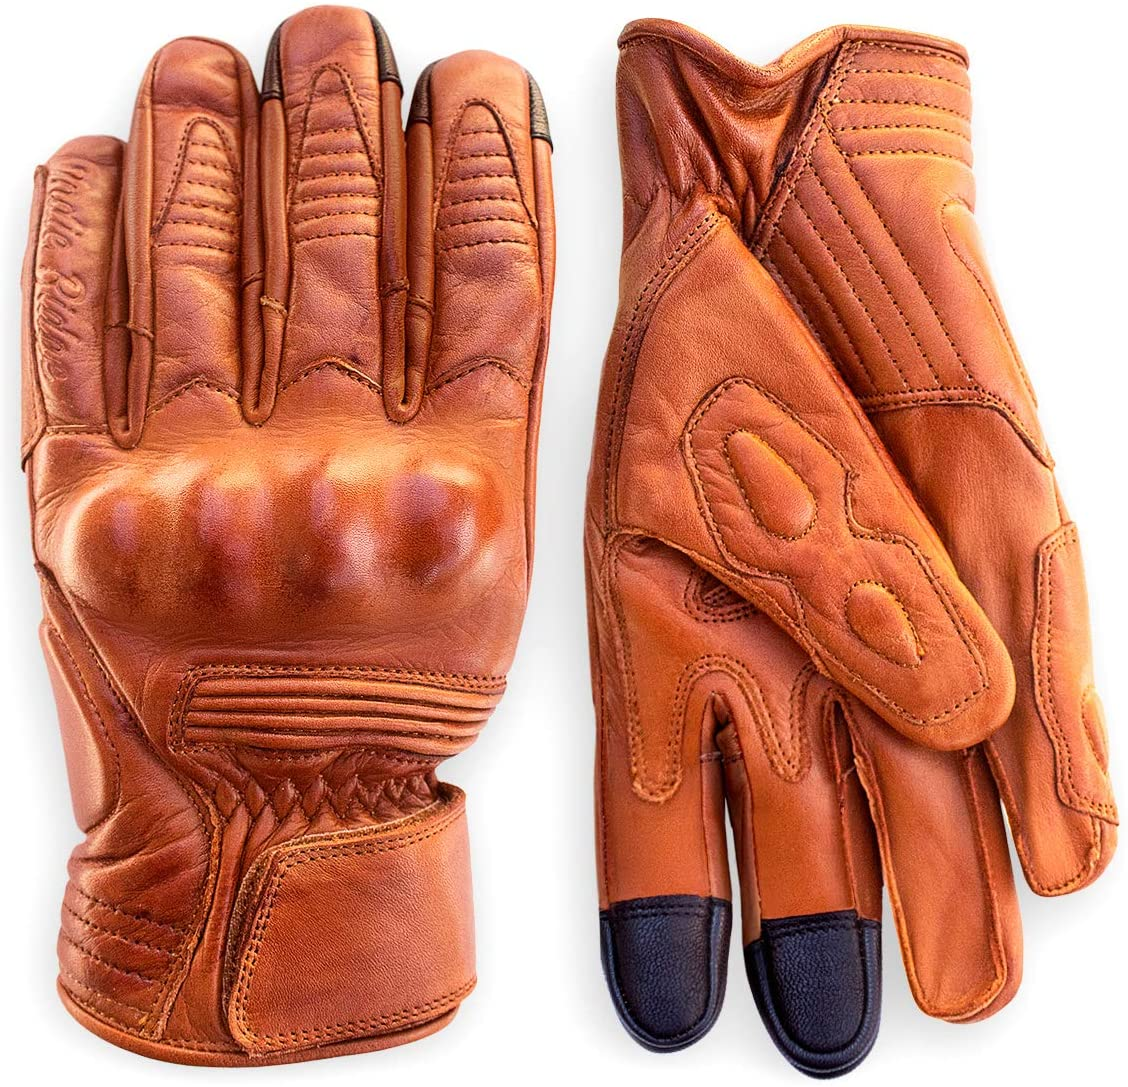 Premium Leather Motorcycle Gloves (Camel) by Indie Ridge Mobile Touchscreen Knuckle Protection (Large)